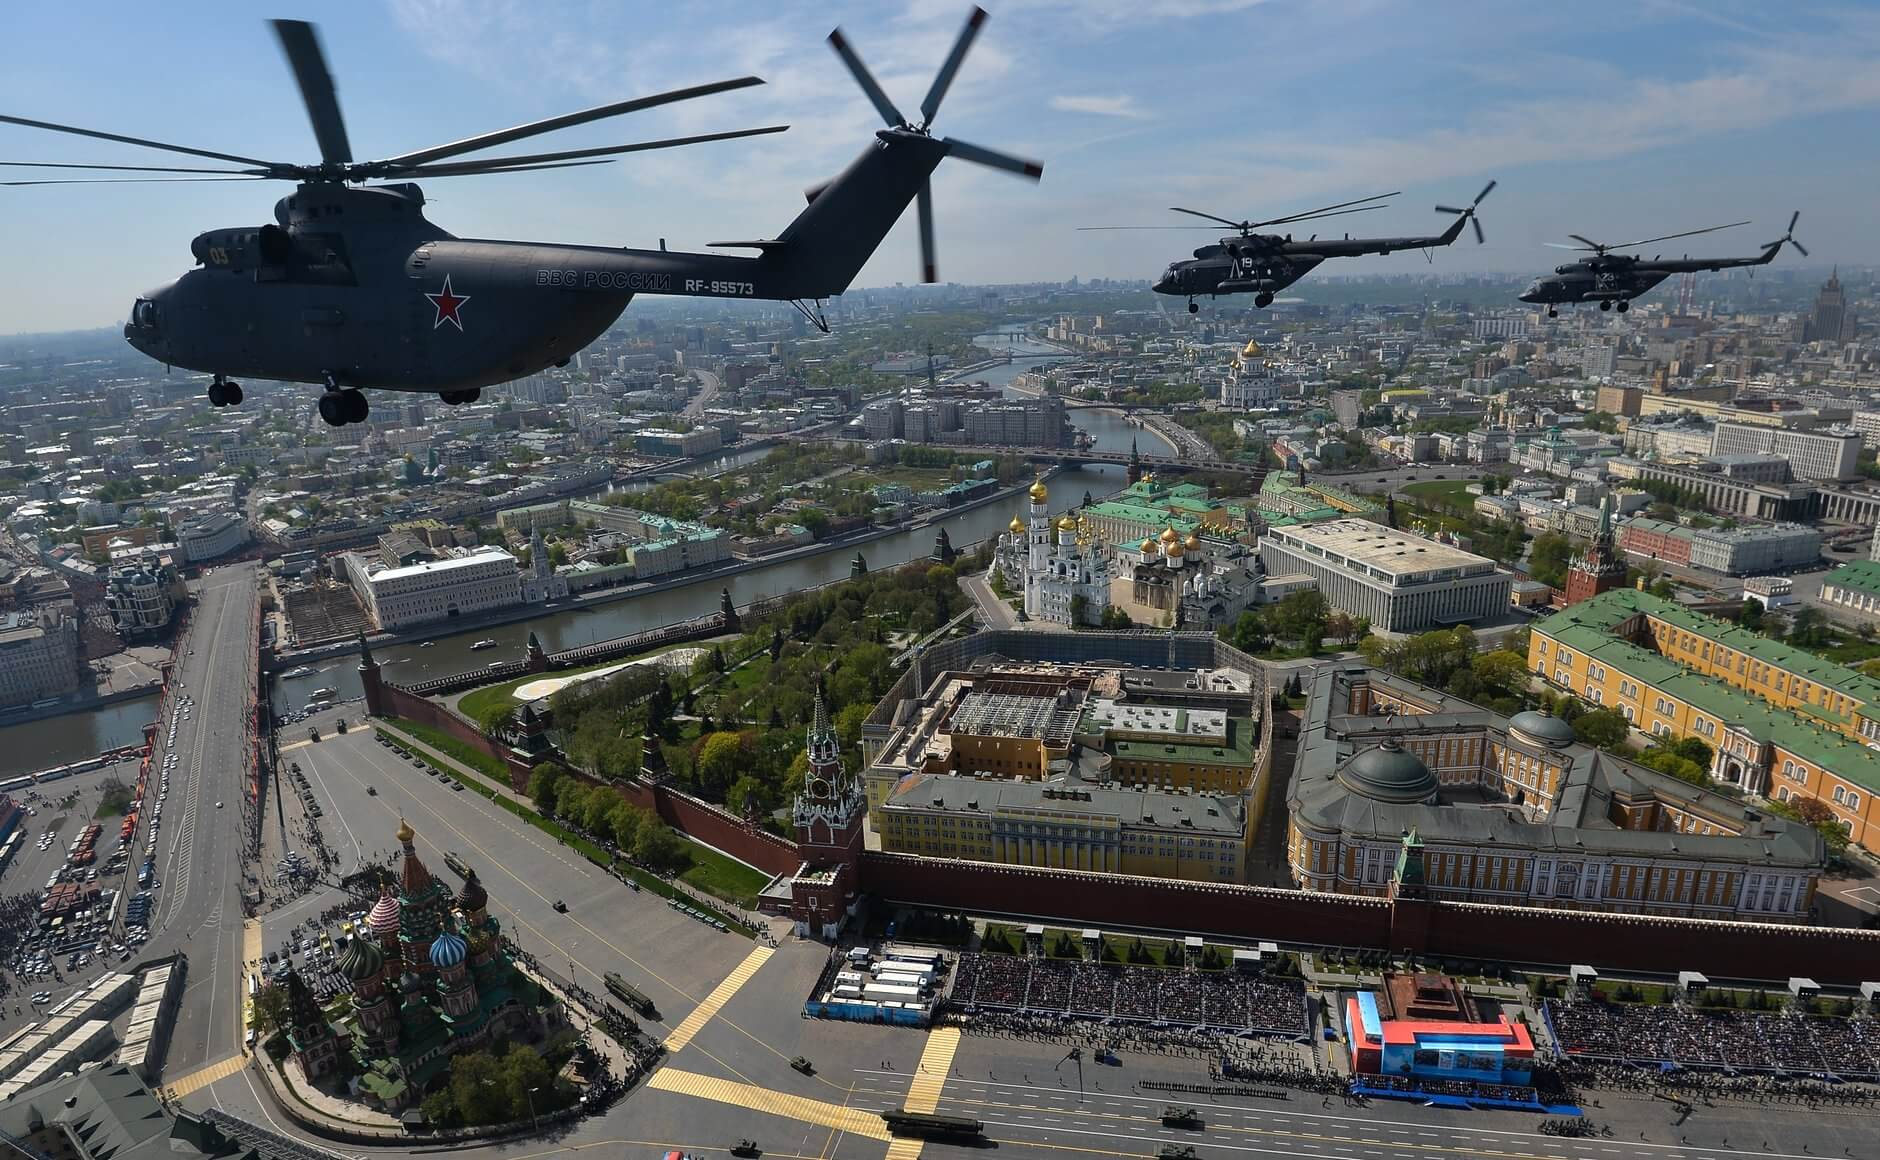 Klijn-Russian Air Force helicopters over Red Square as part of the flypast for the 2015 Victory Day Parade. Wikimediacommons